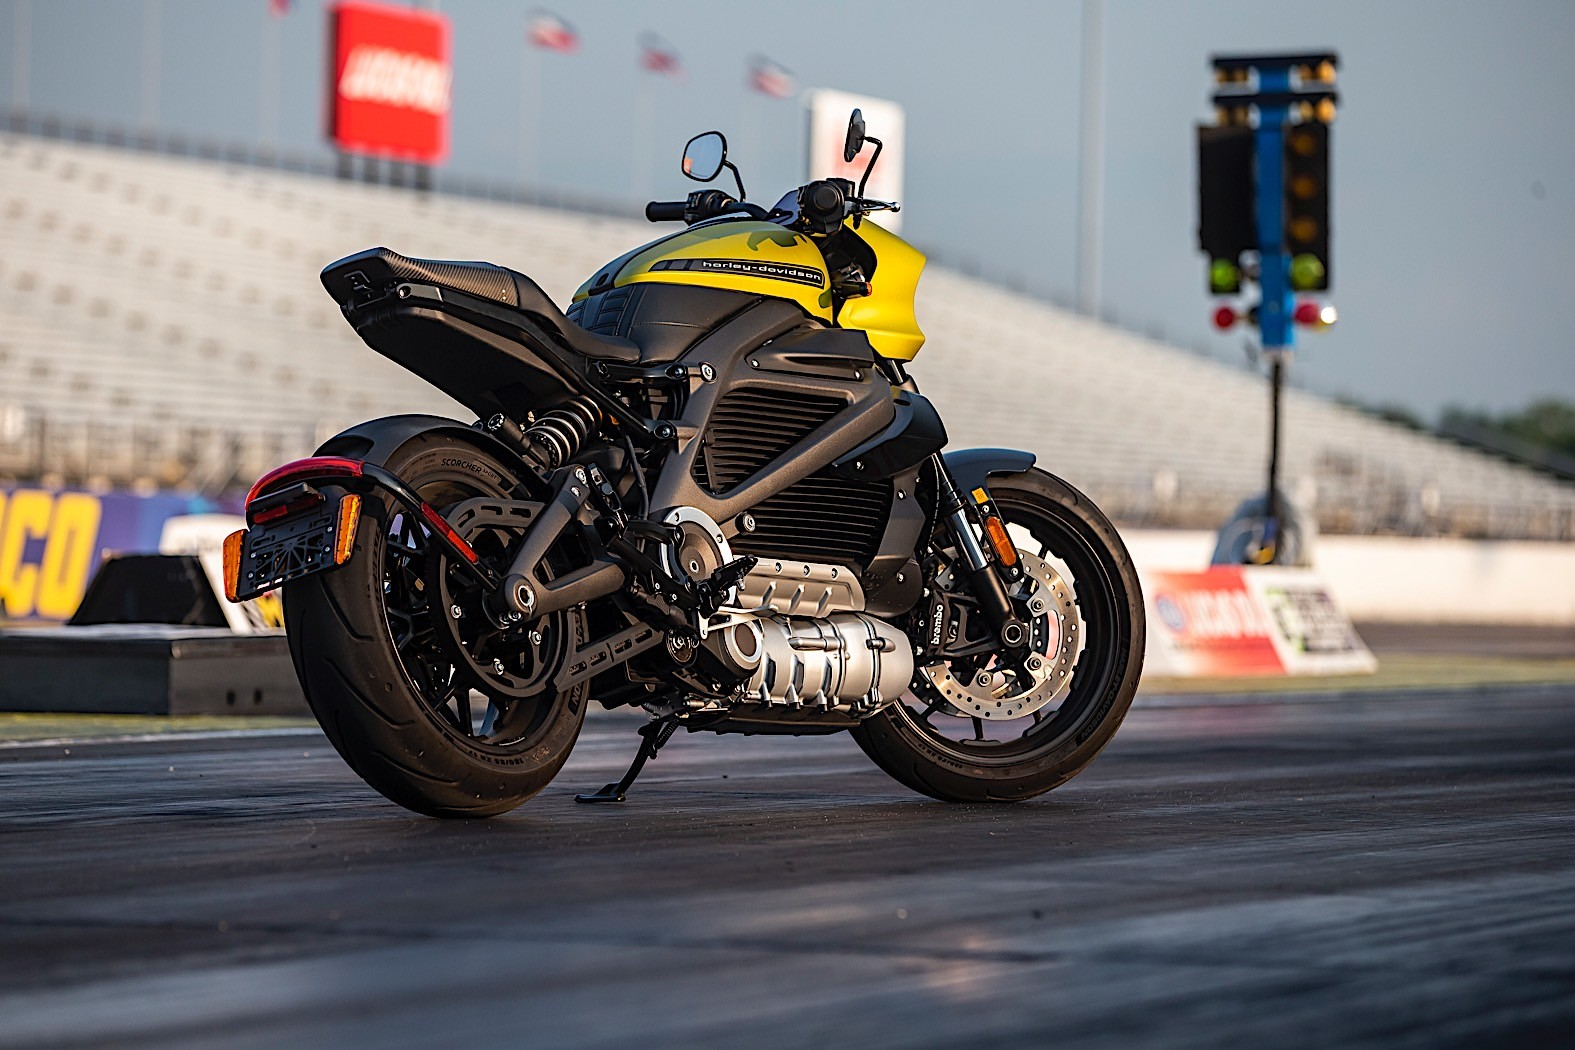 Harley-Davidson Recalls 2020 LiveWire Motorcycles Over Unexpected Shutdown